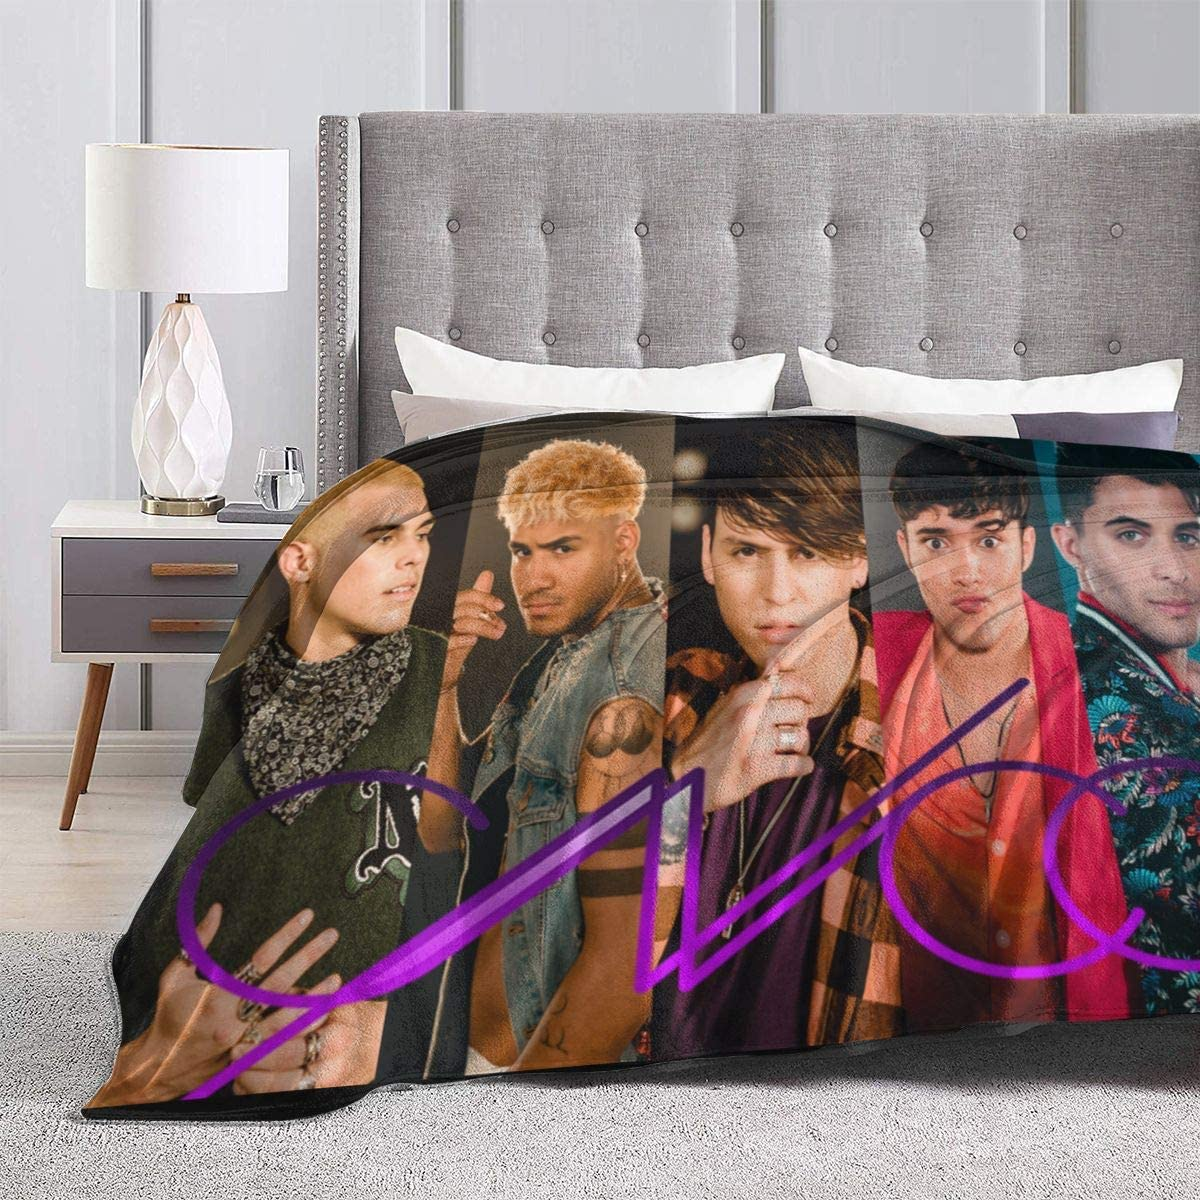 Hengtaichang Cnco Blanket Soft Blanket Microfiber Blanket Flannel Fleece Throw Blanket for Bed Couch Chair Fall Winter Spring Living Room 50x40